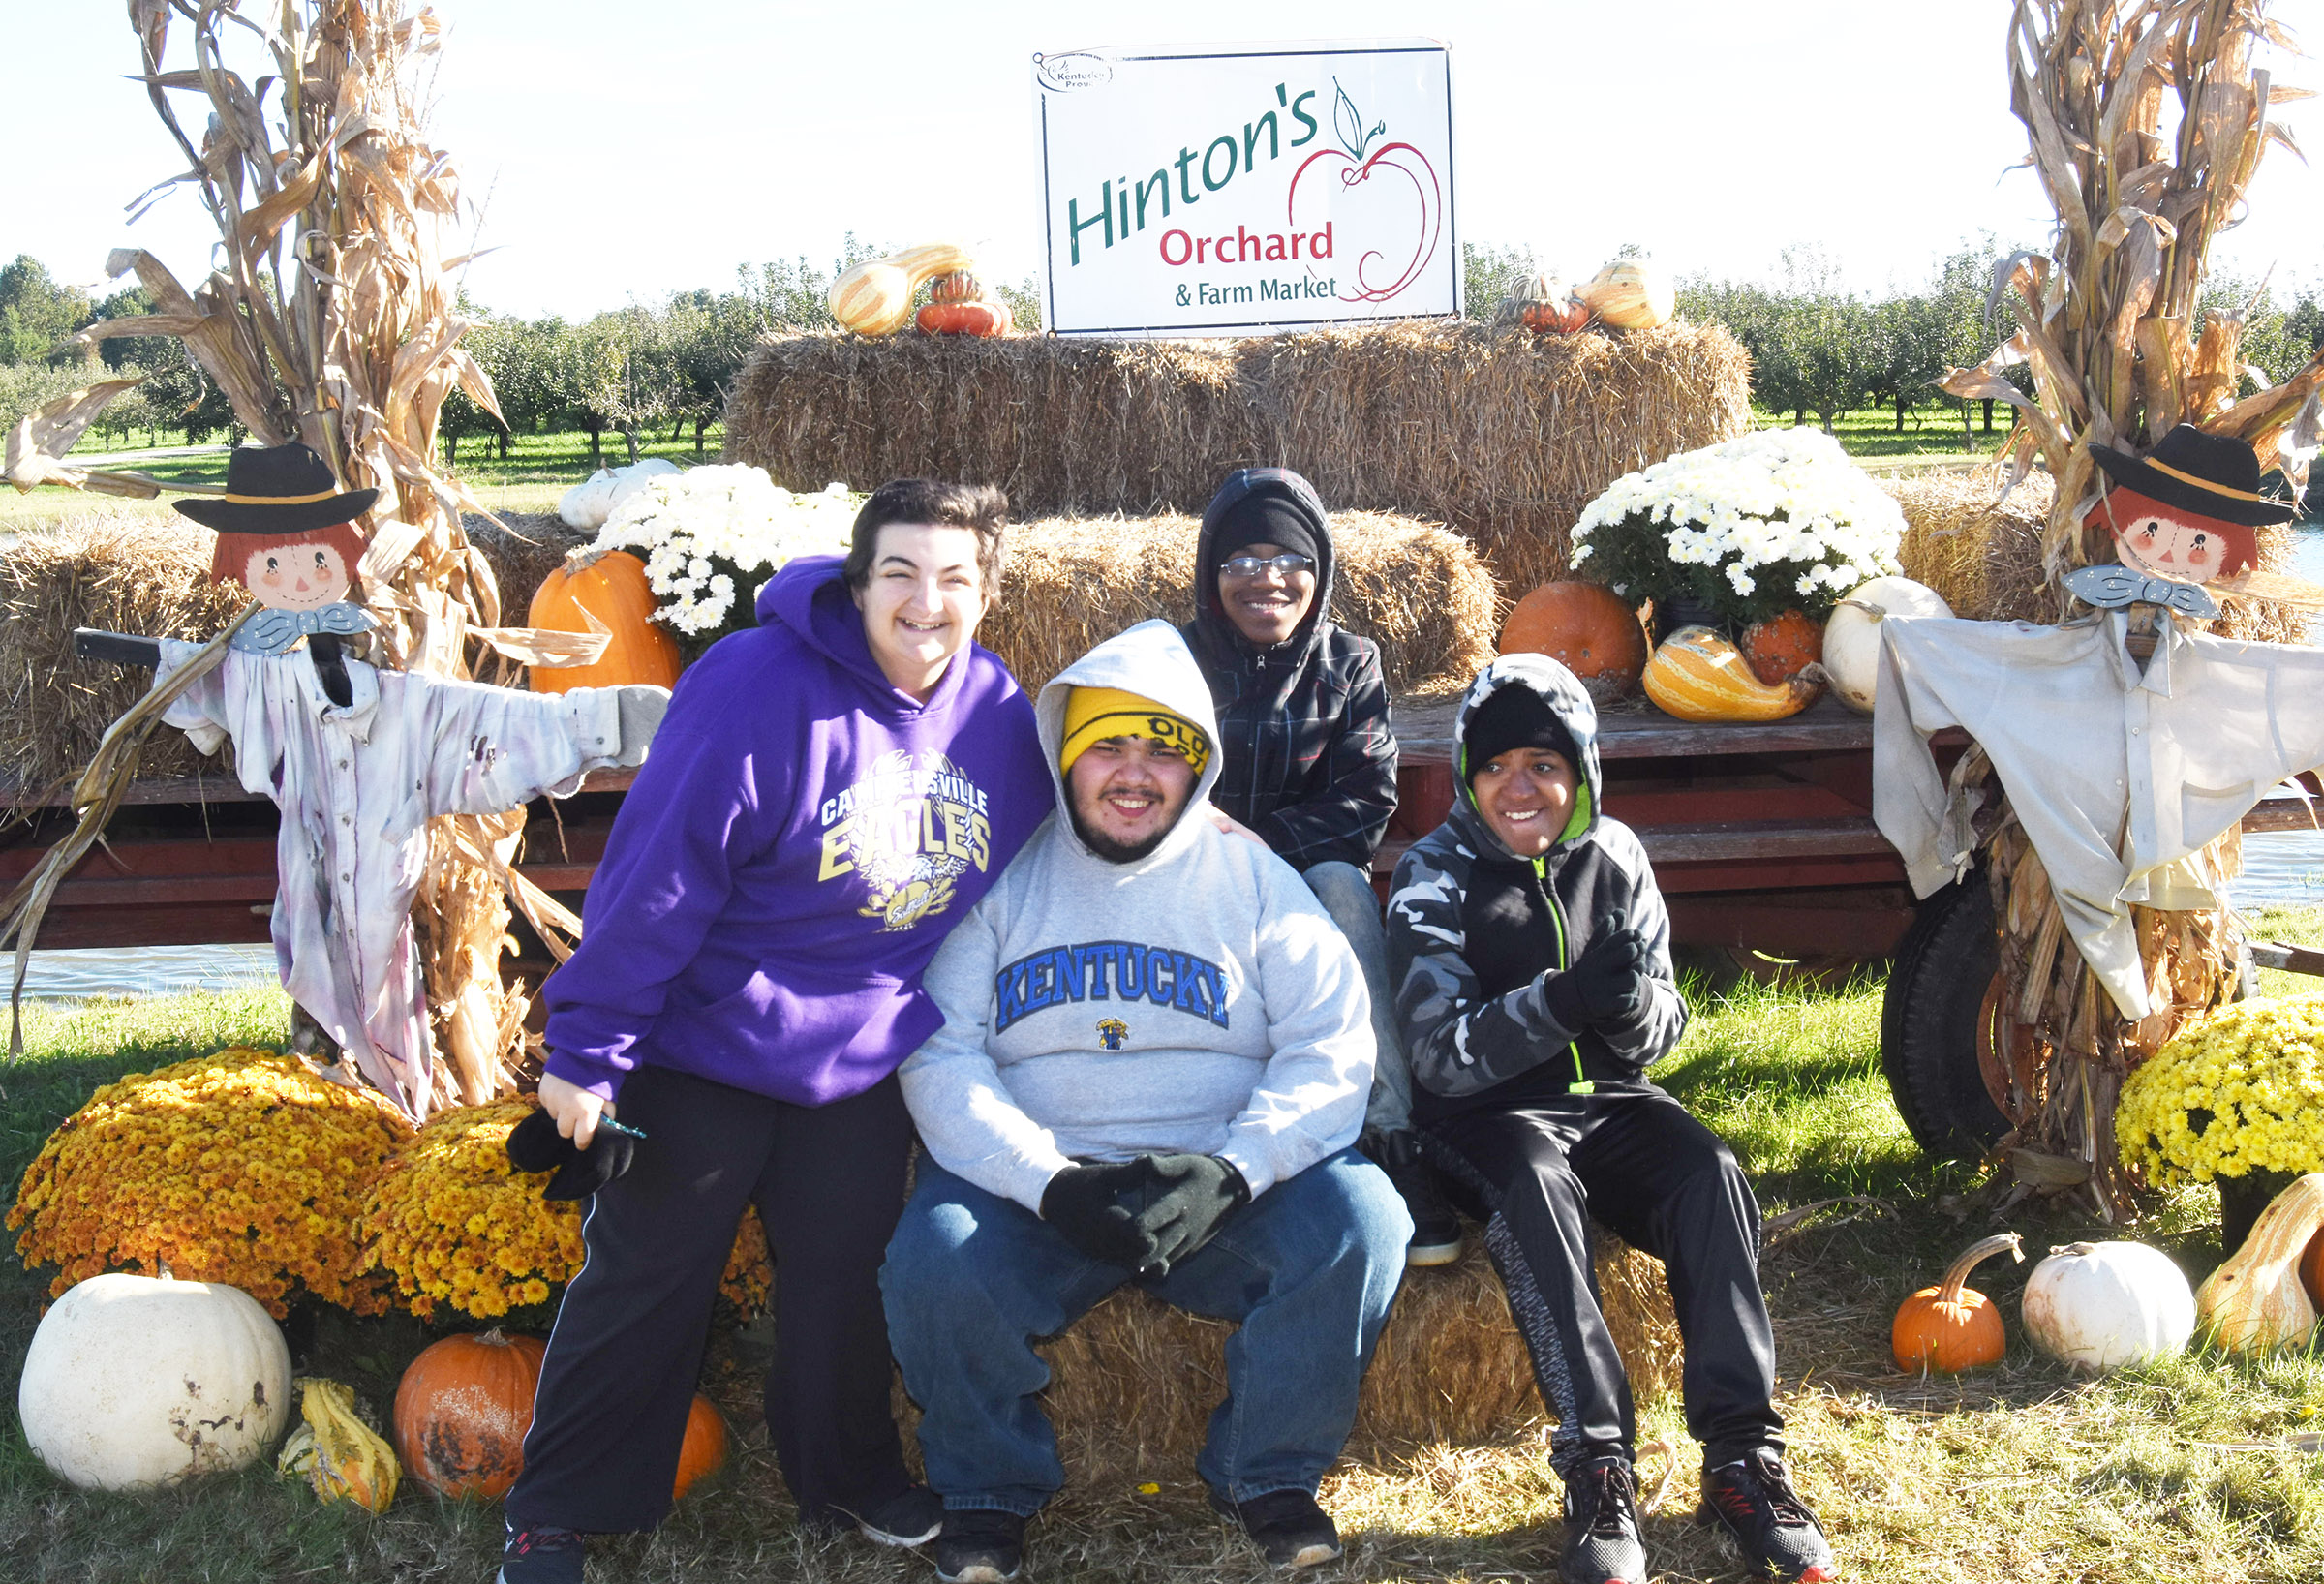 From left, CHS seniors Brooke Tucker, Robert Tungate, Travis Nash and Chris Moran smile for a photo together at Hinton's Orchard.